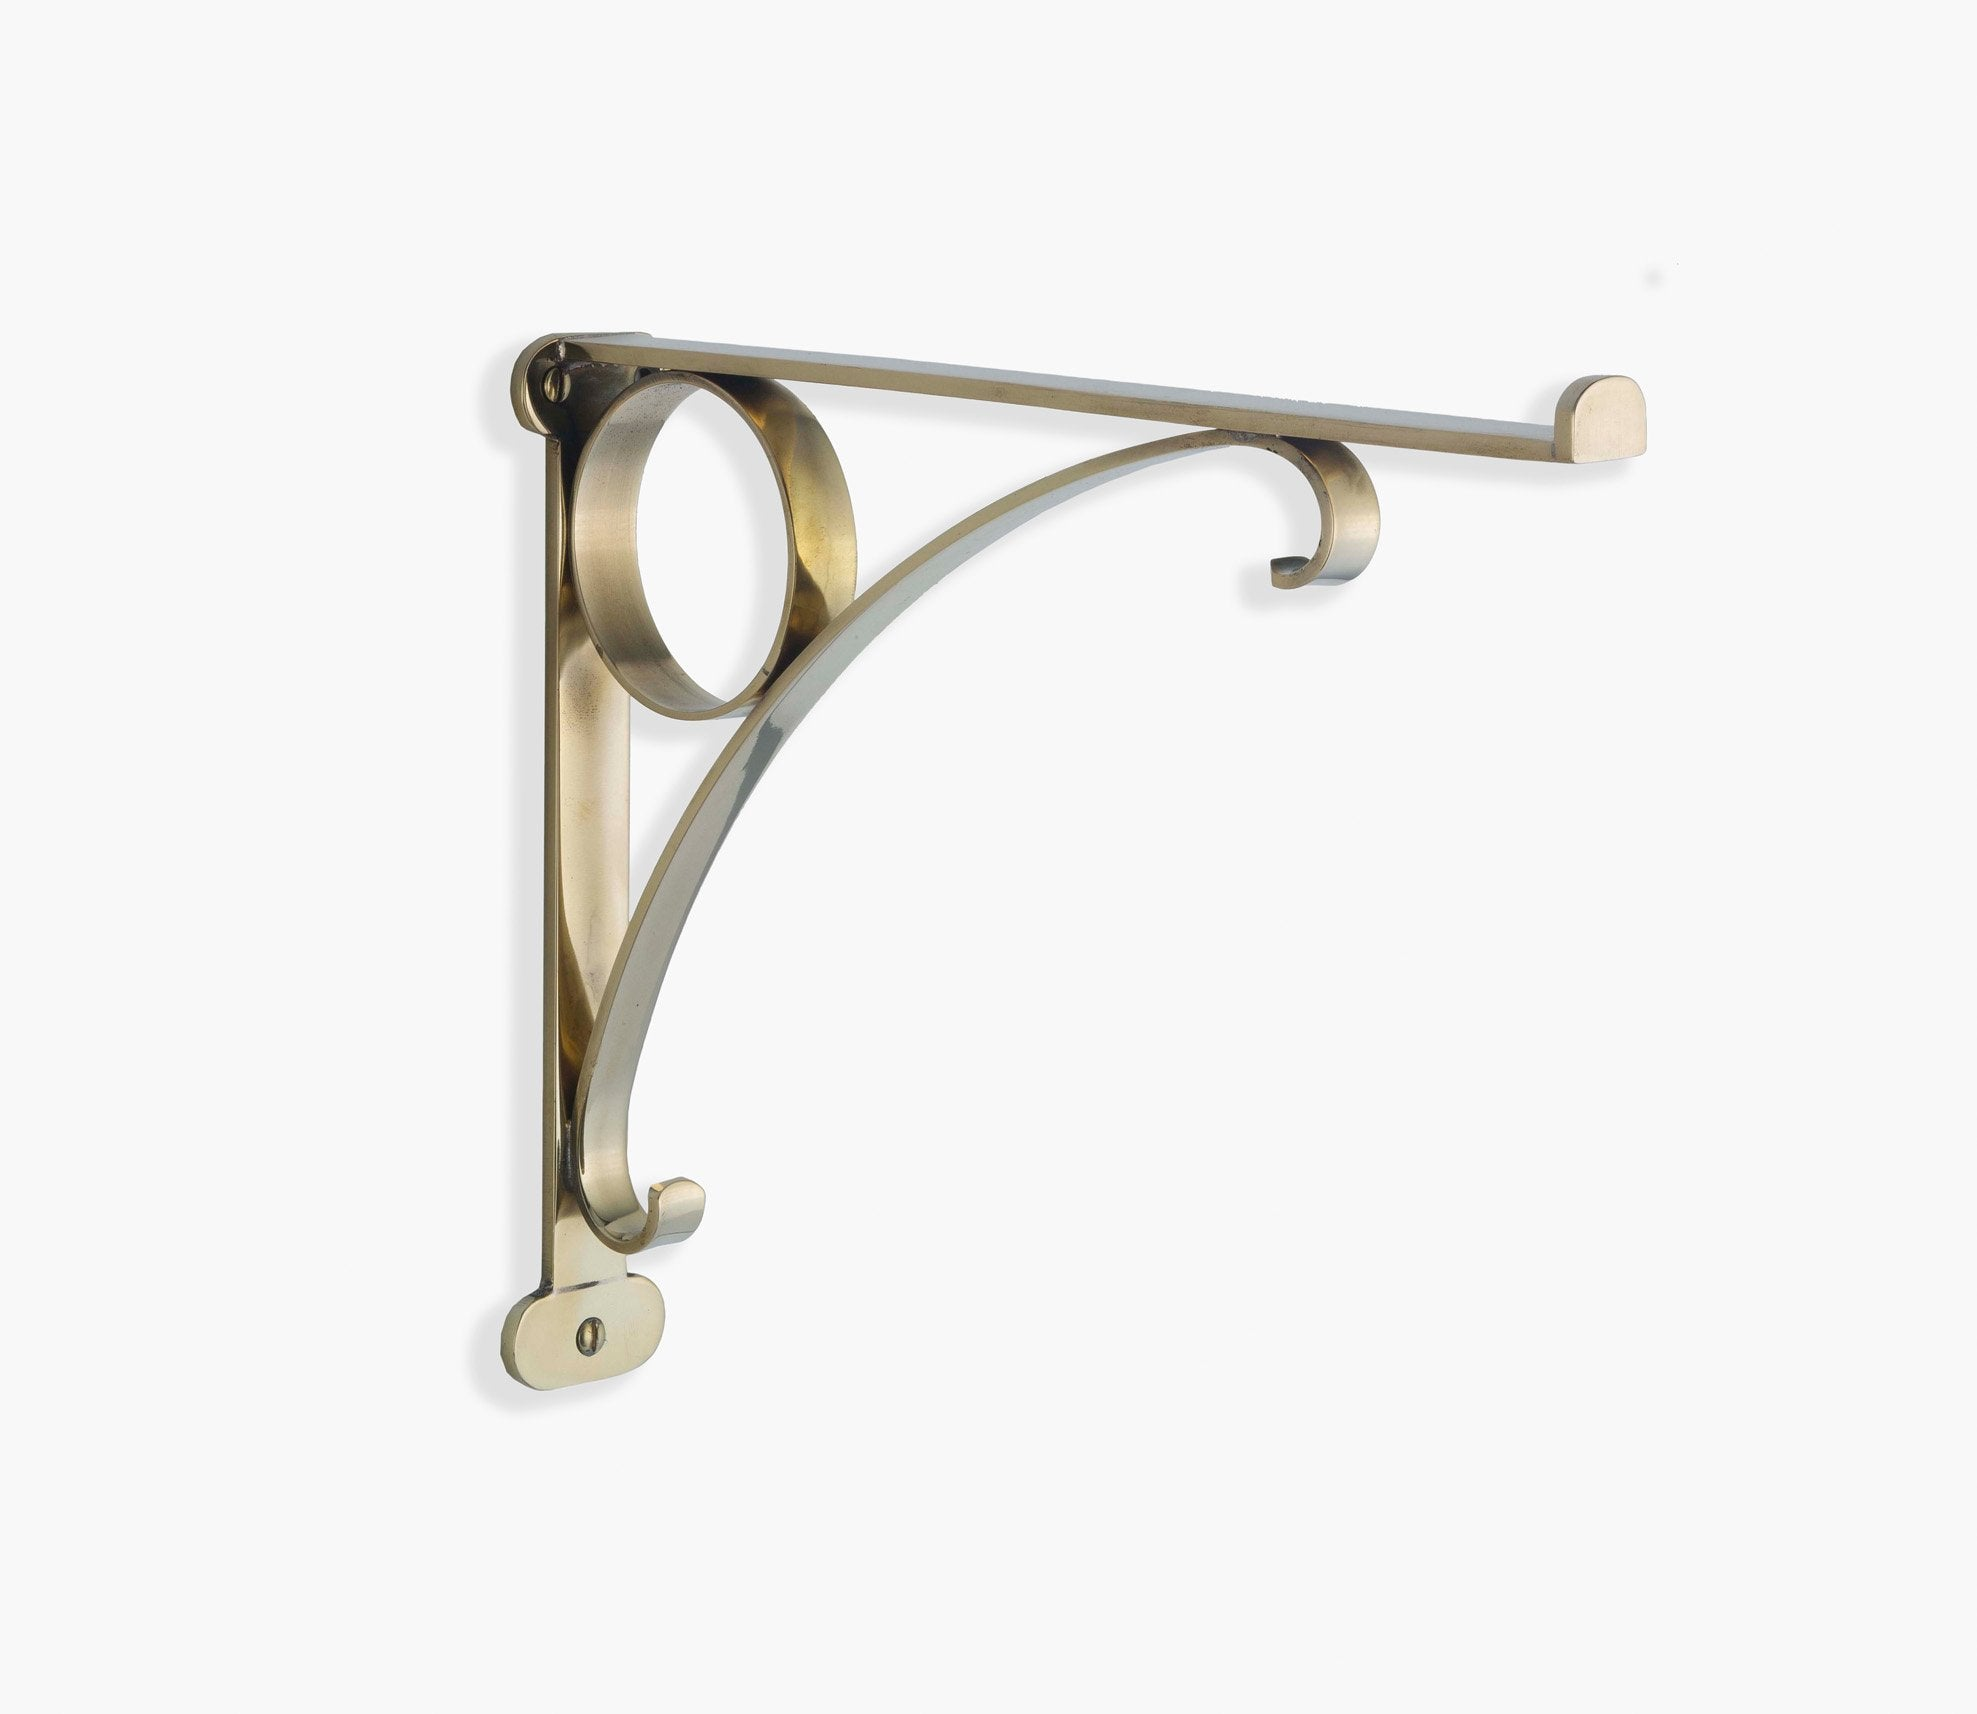 Shelf Bracket 032 Product Image 1